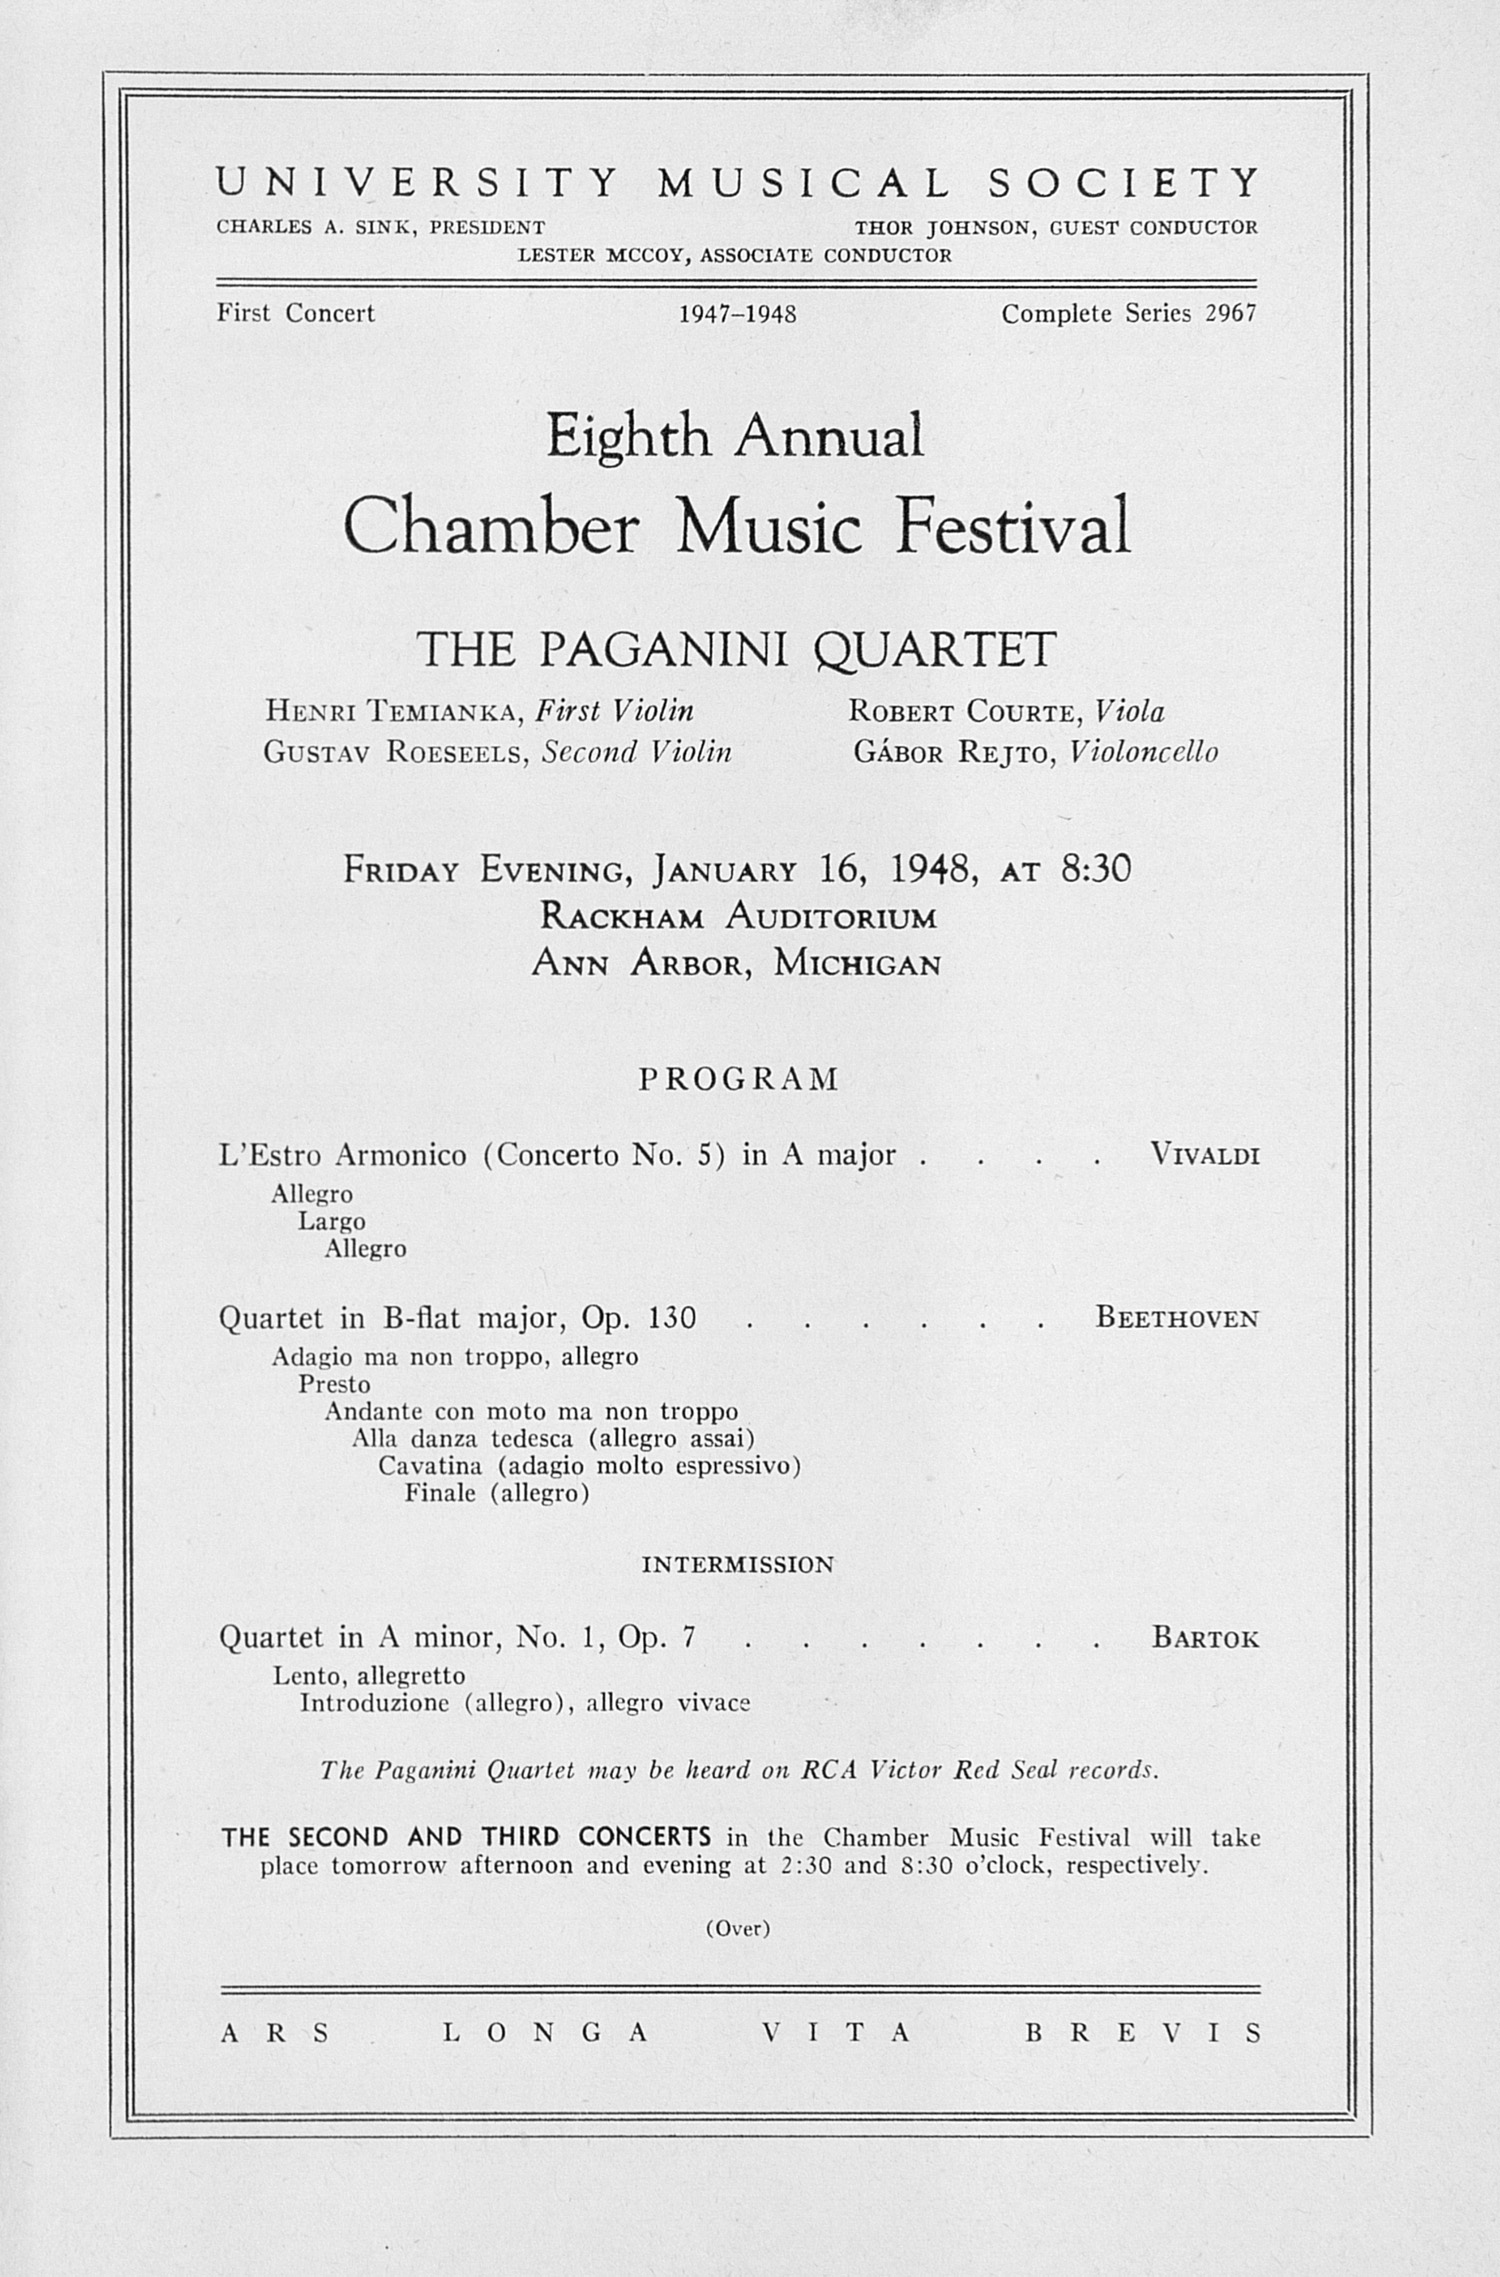 UMS Concert Program, January 16, 1948: Eighth Annual Chamber Music Festival -- The Paganini Quartet image